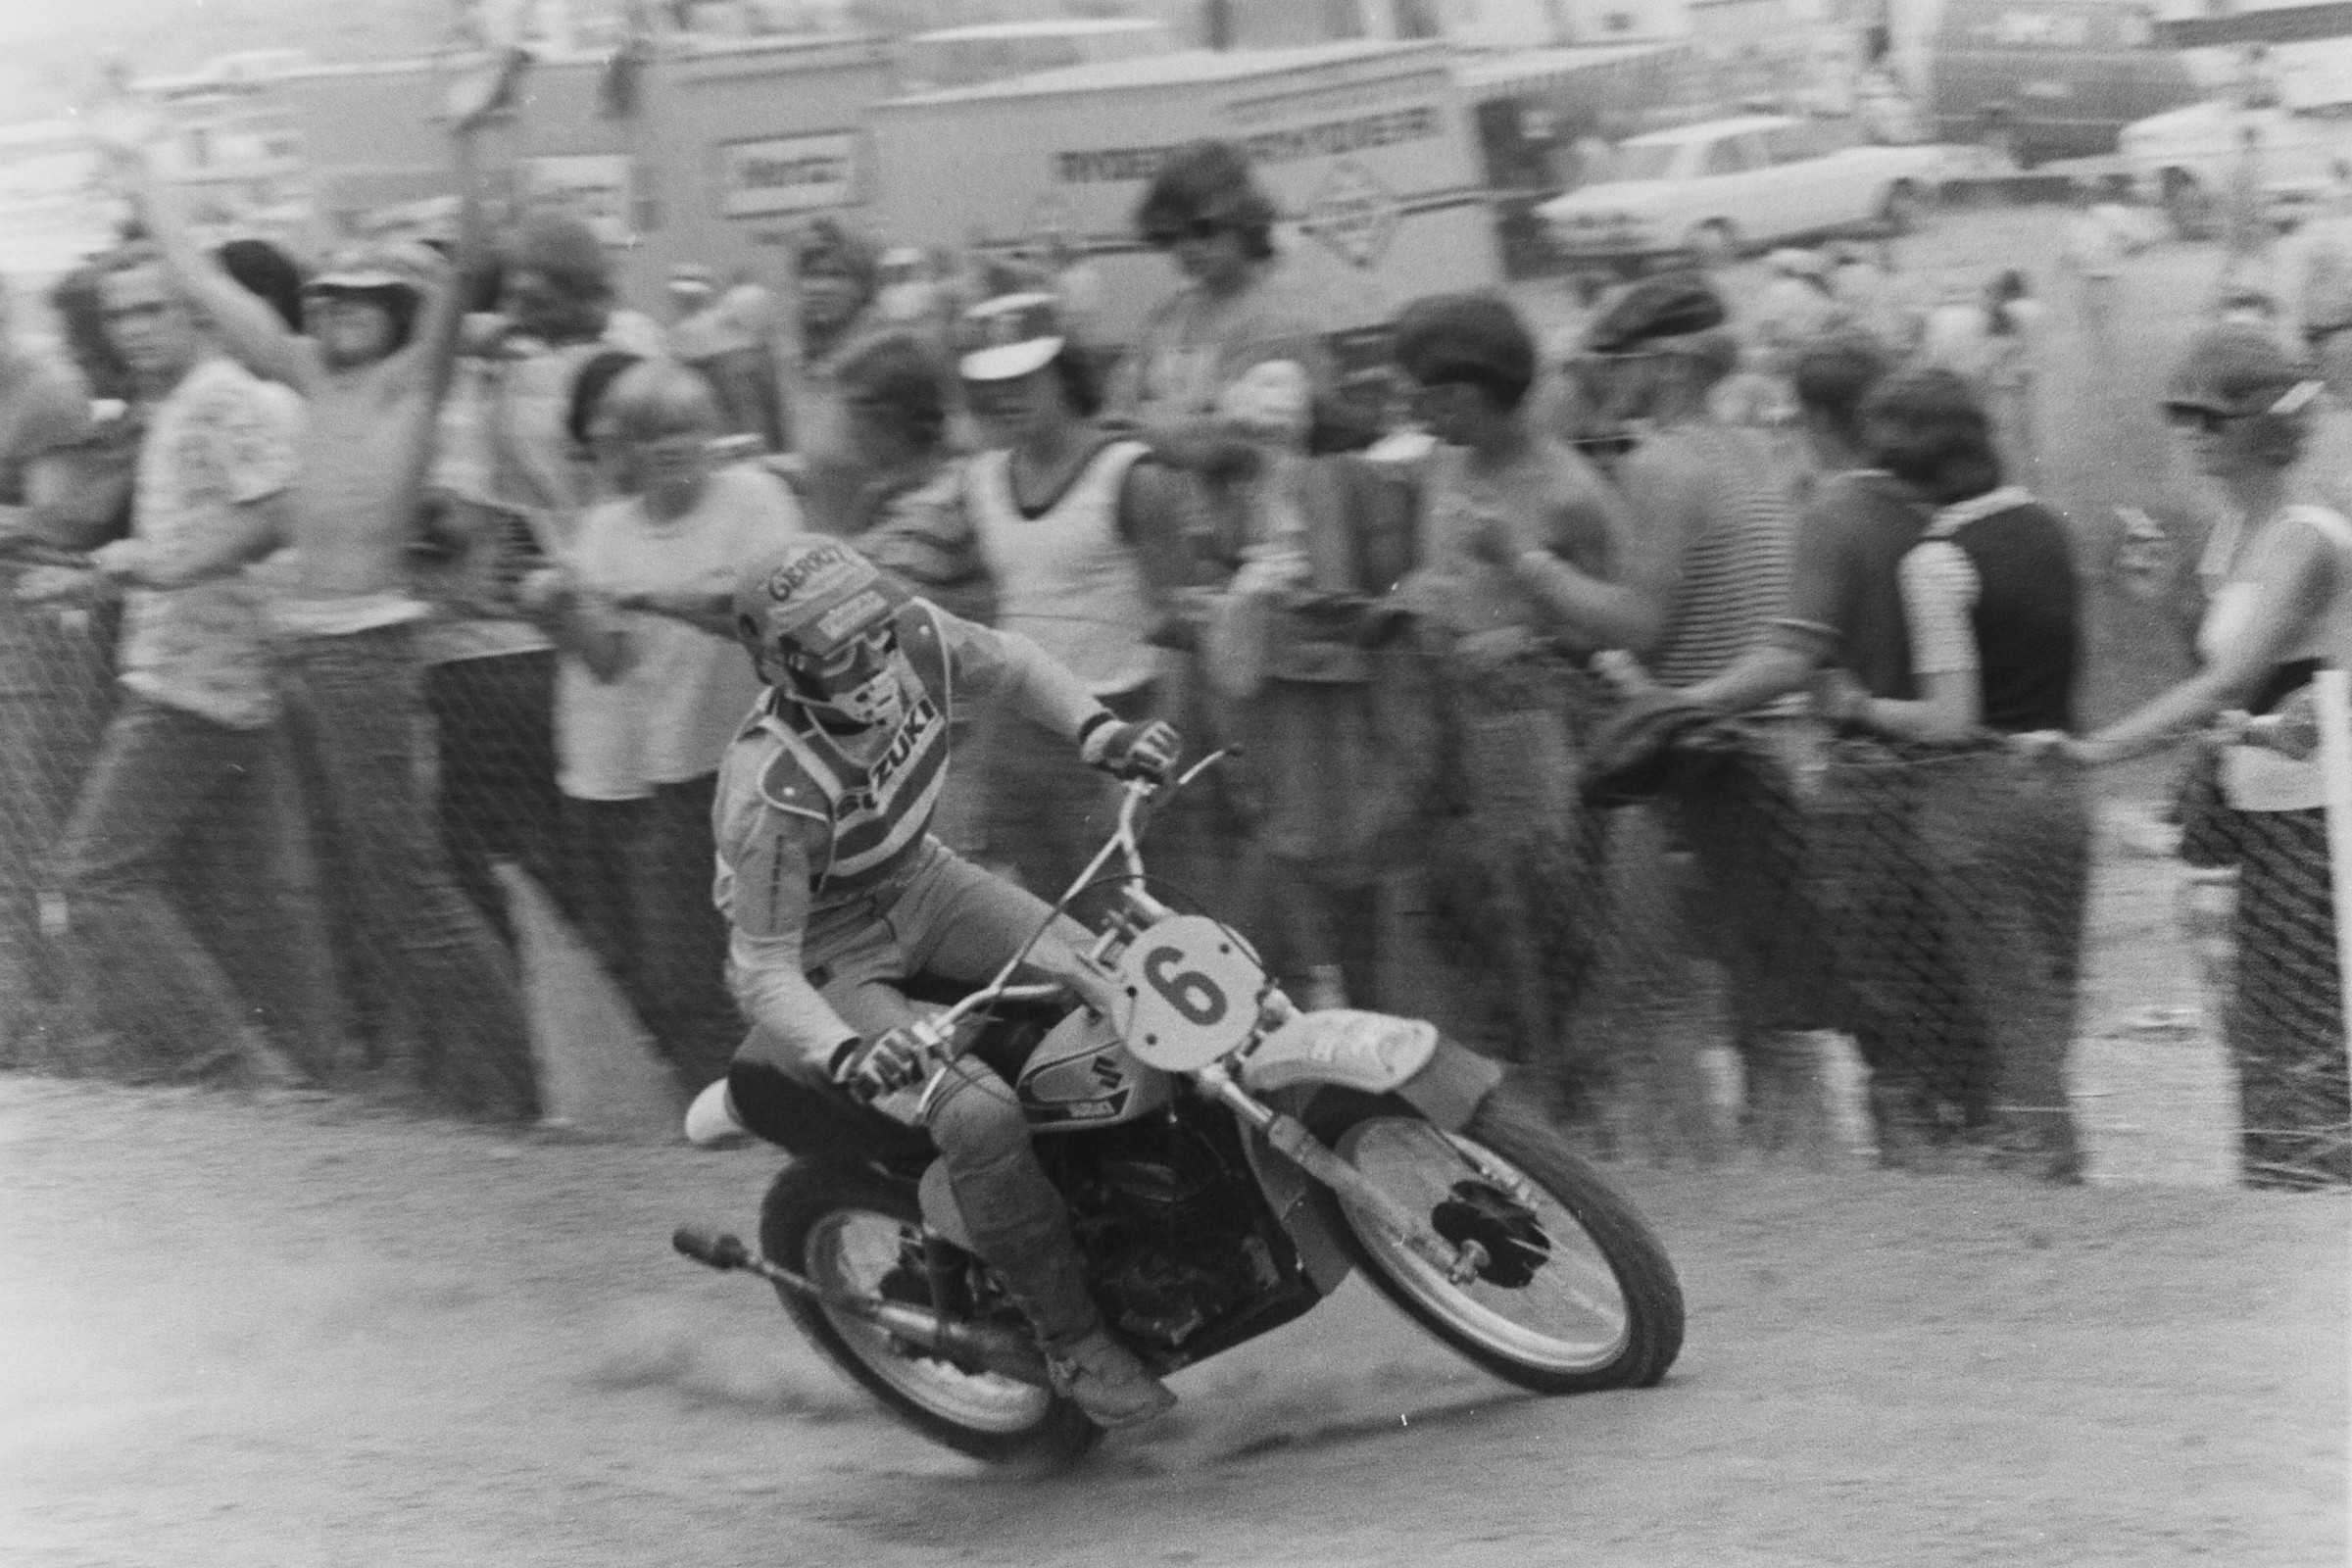 Wolsink's win in 1974 was the first of his record five at Carlsbad.